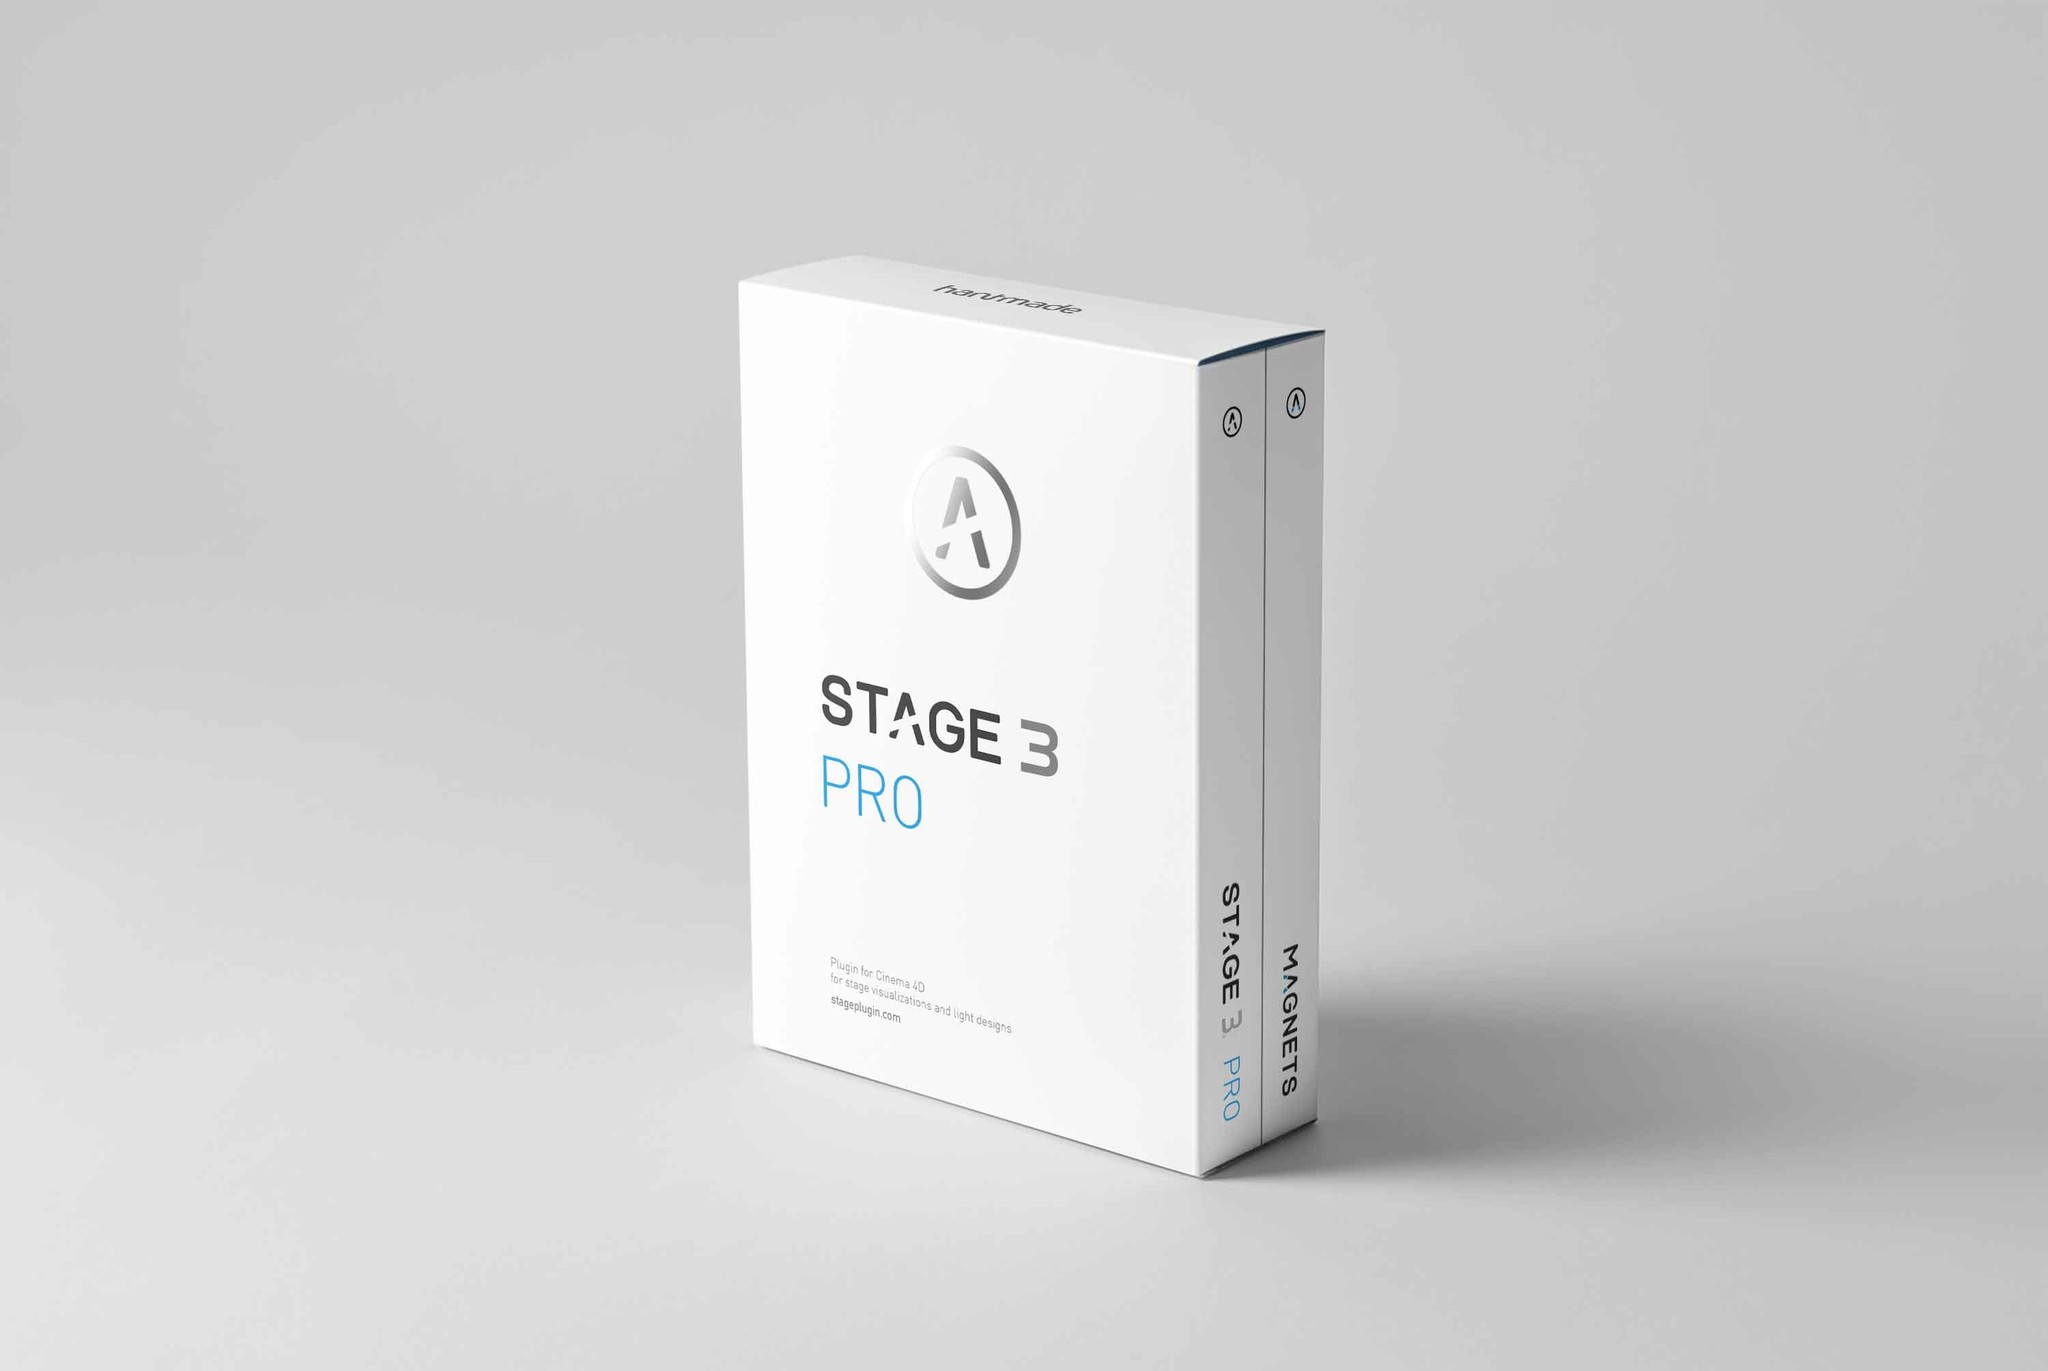 Stage Pro - Cinema 4D Plugin - Upgrade: Stage (3) > Stage 3 Pro